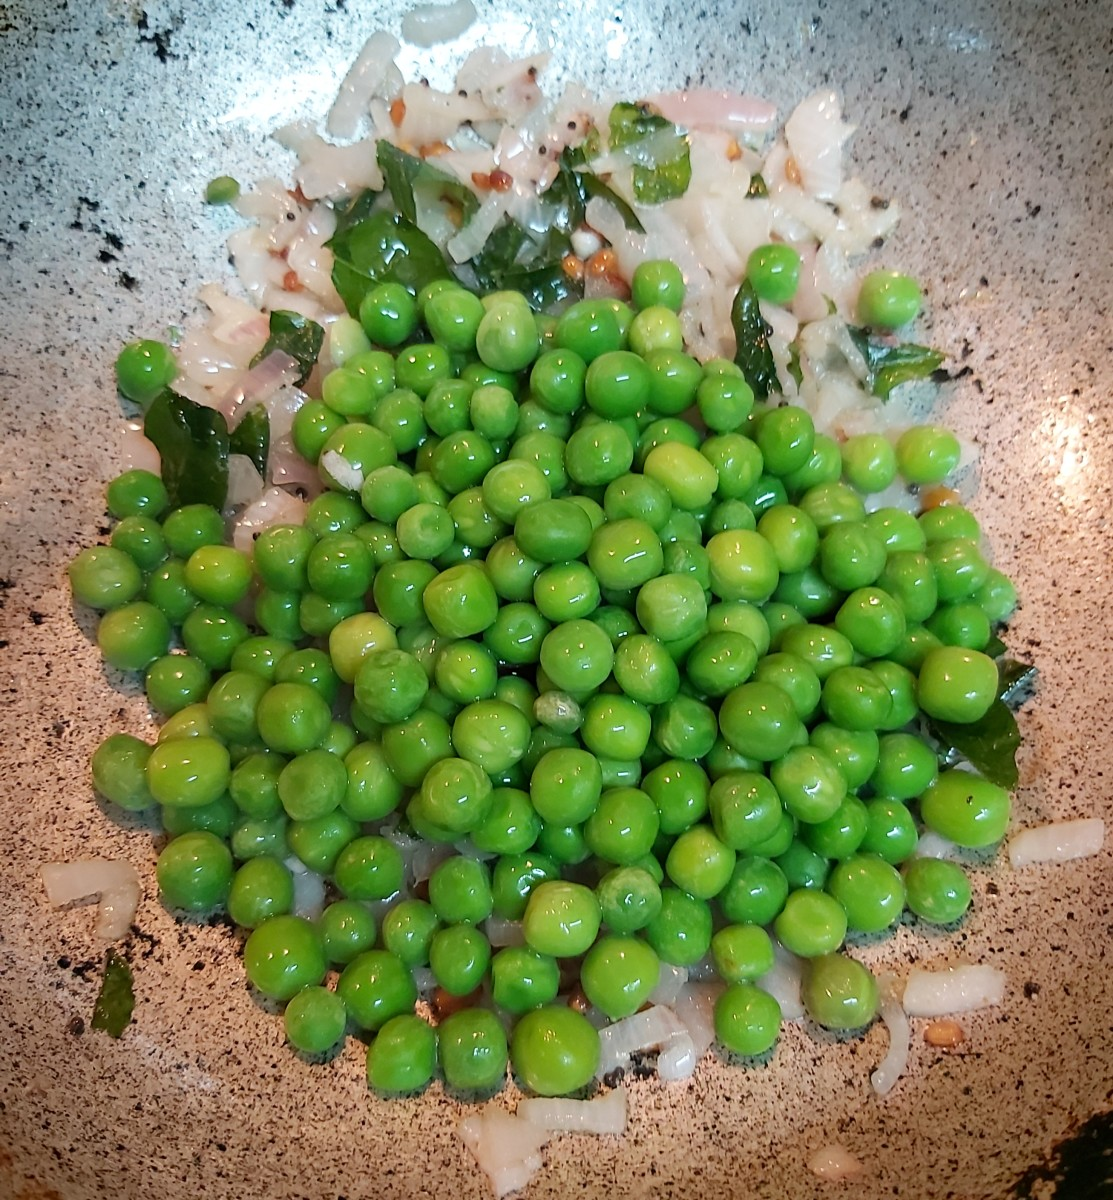 Add 1/2 cup of frozen peas (if using).